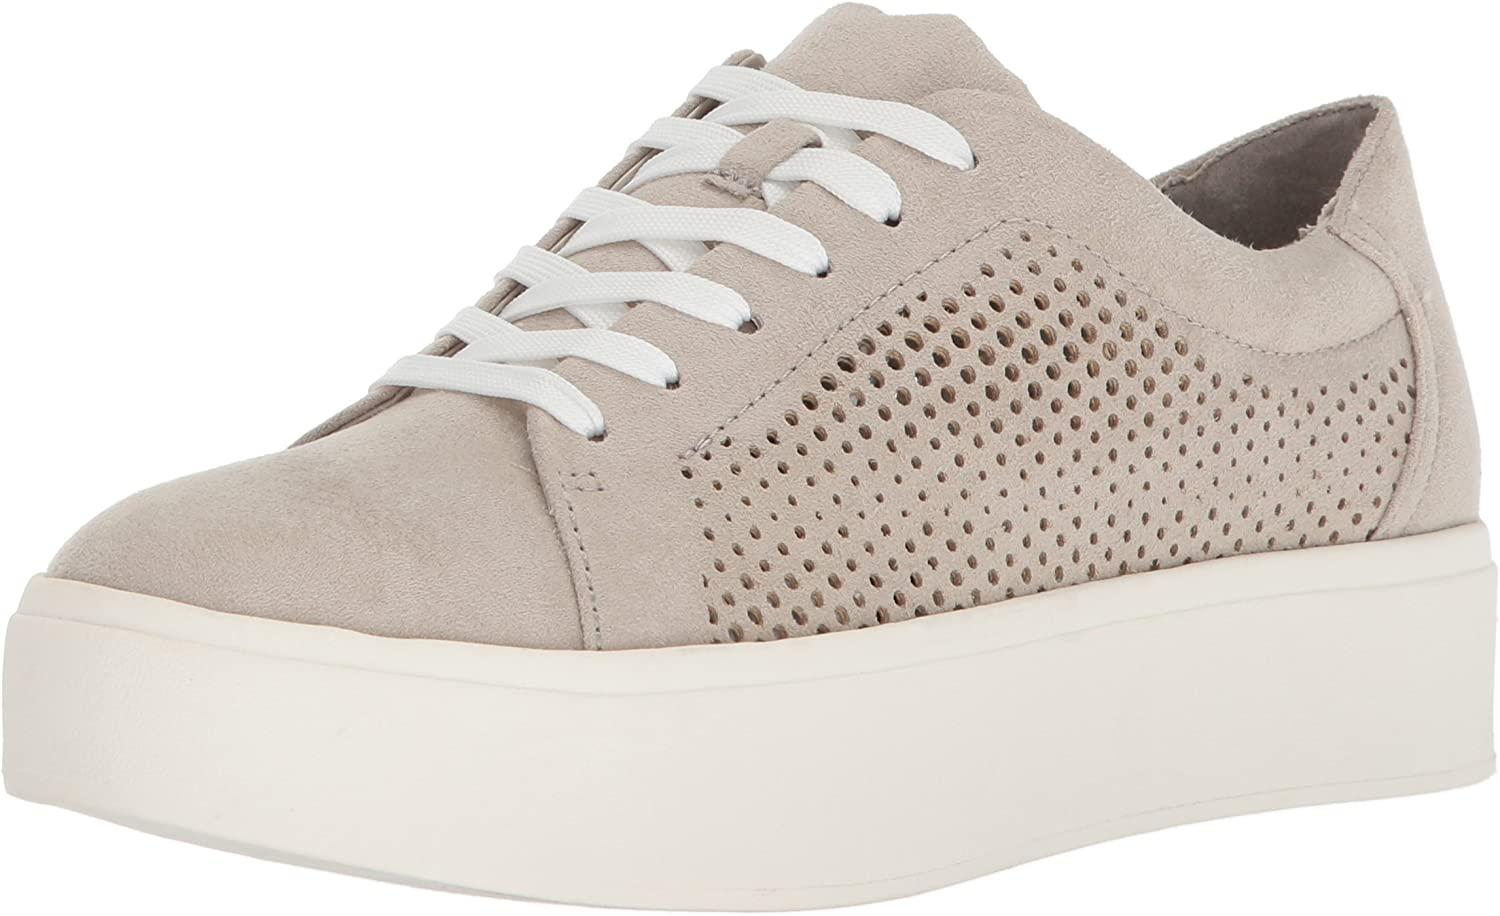 dr scholl's white platform sneakers